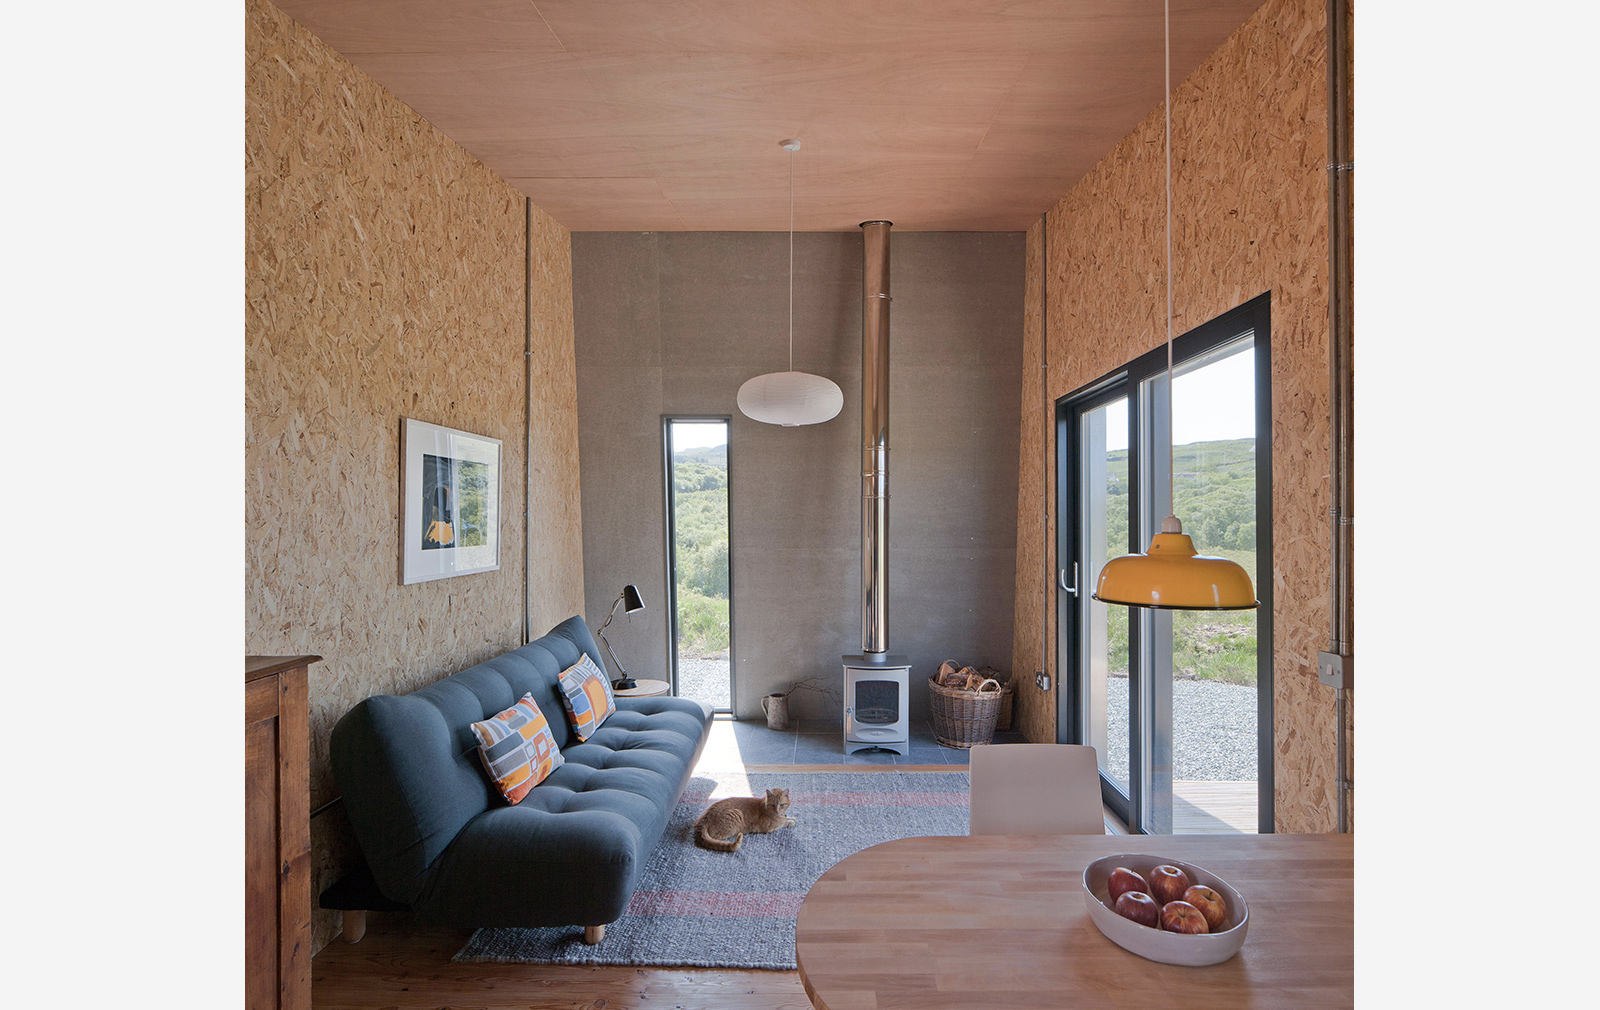 Holiday home for rent: Fiskavaig Studio